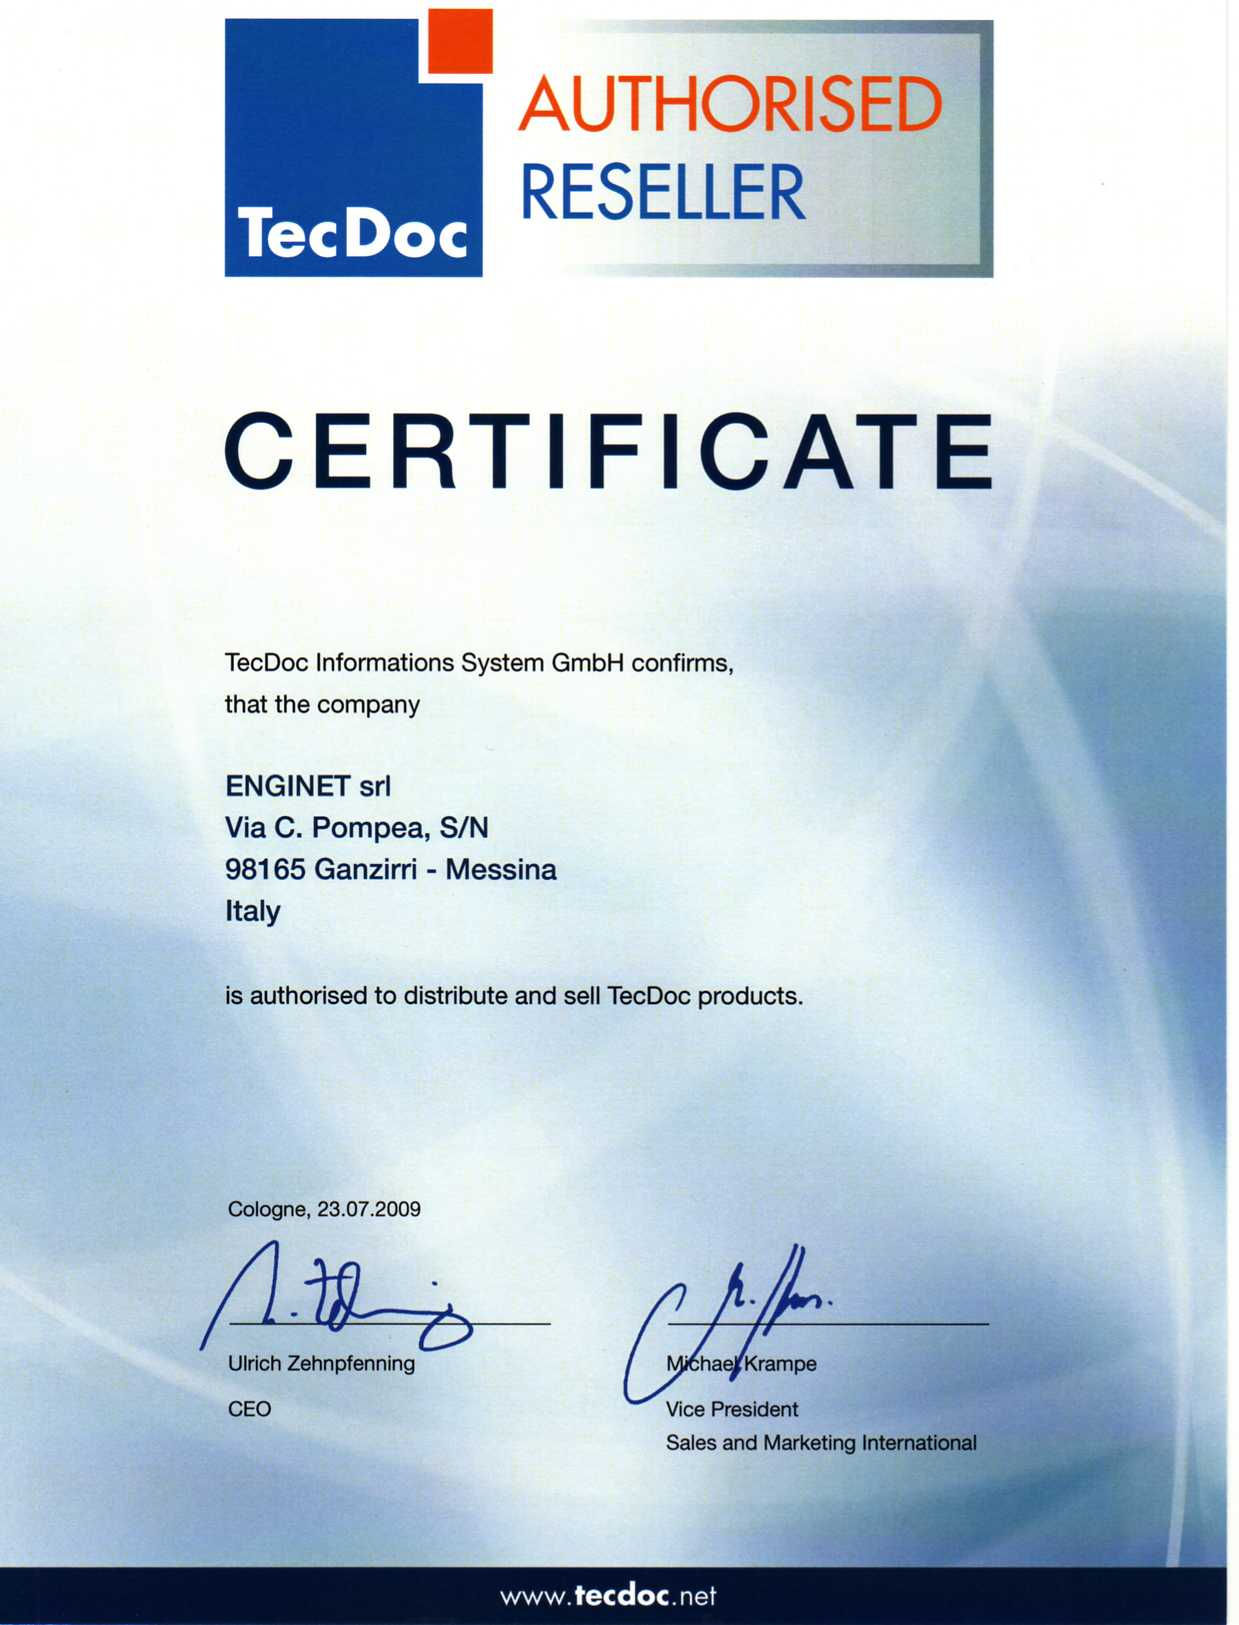 cert tecdoc enginet